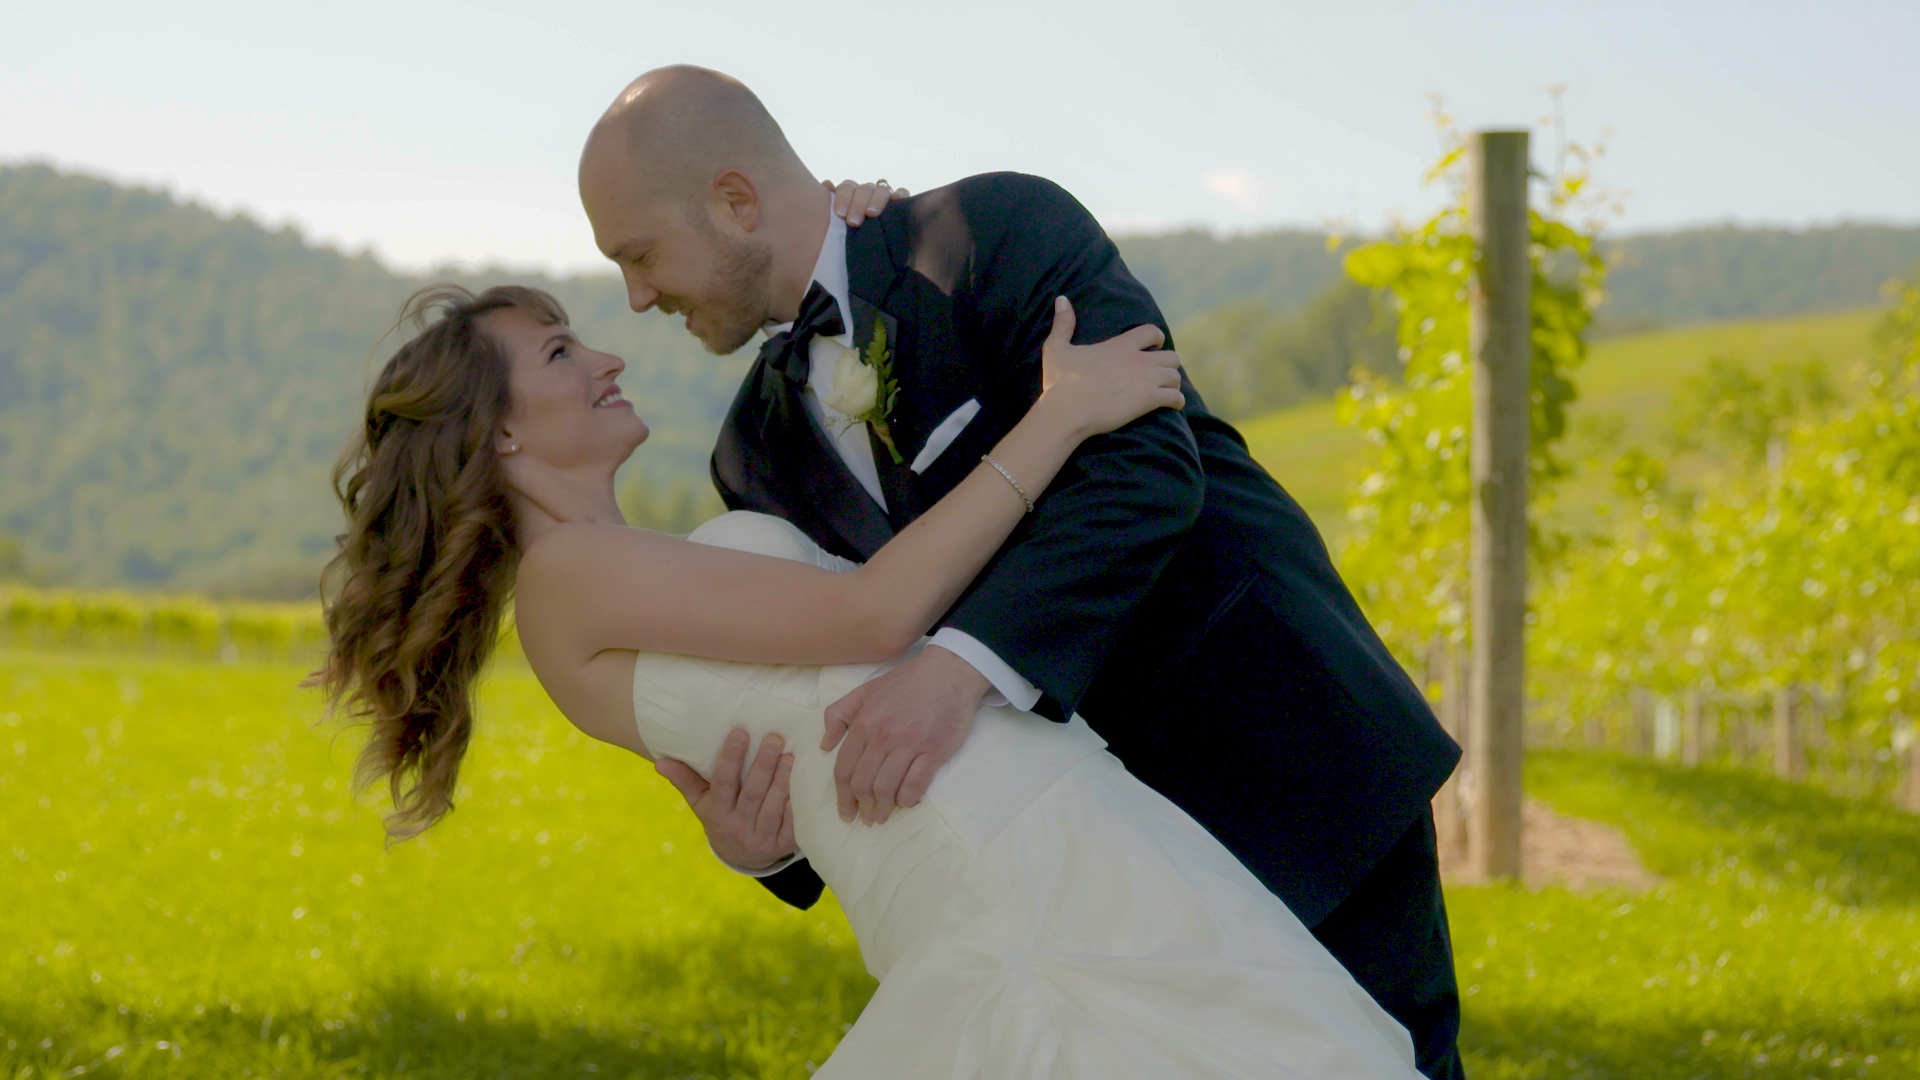 Ally & J Wedding Highlights Video at Veritas Vineyard